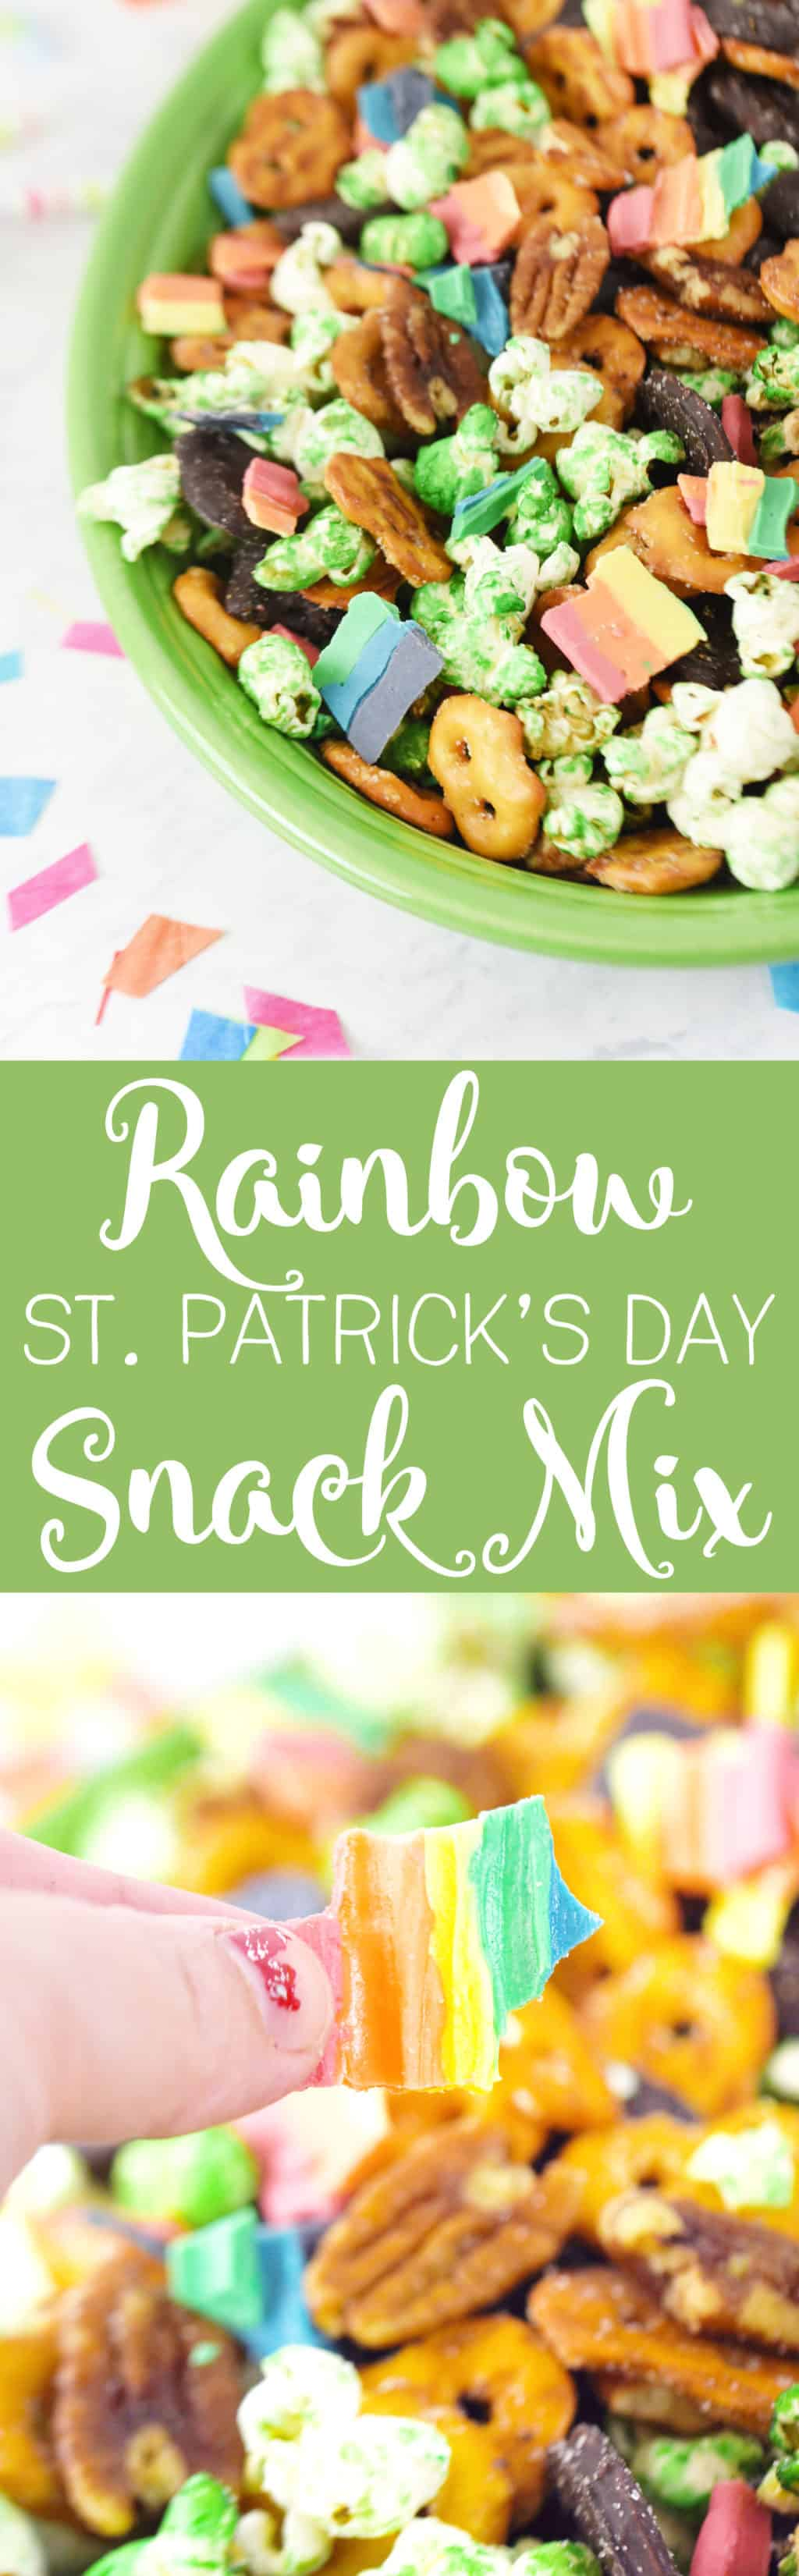 Rainbow St. Patrick's Day Snack Mix.!. Such a fun and delicous snack mix for St. Patrick's Day!